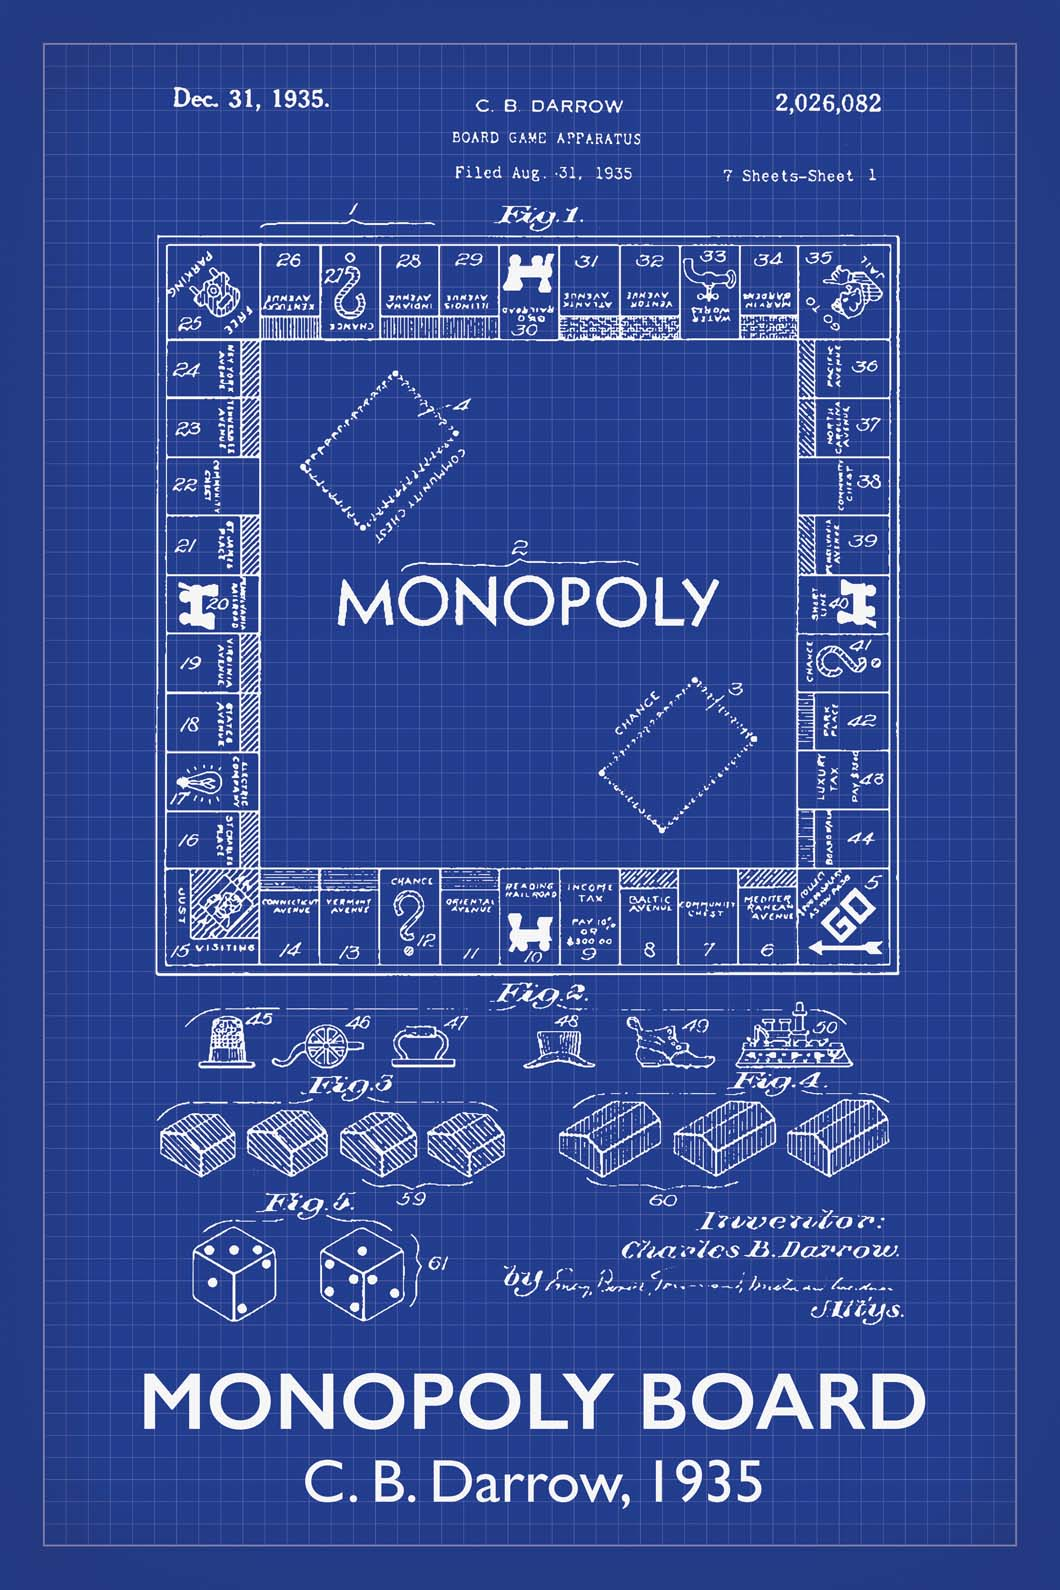 Monopoly Board Game Patent Print - 16X24 Inches / Titled Blueprint / Art Poster